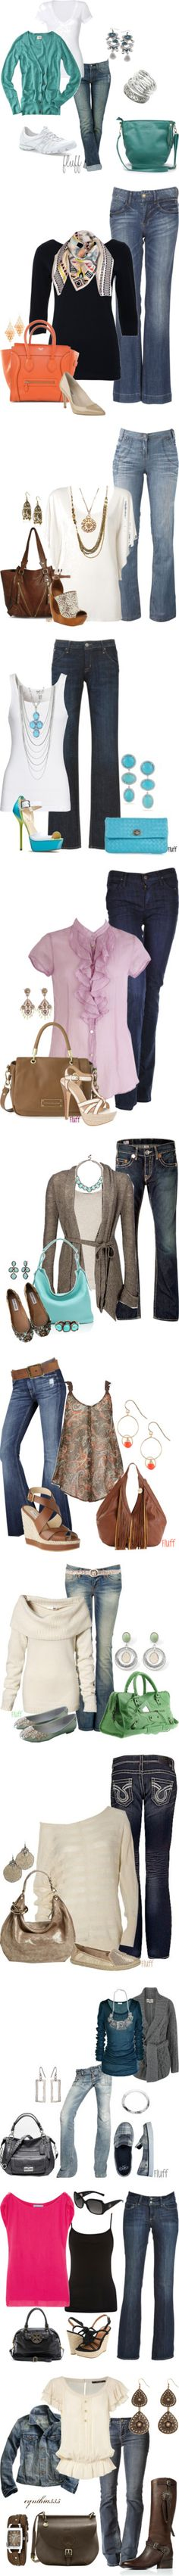 """Casual Weekend Wear v2"" by snowbny08 on Polyvore"